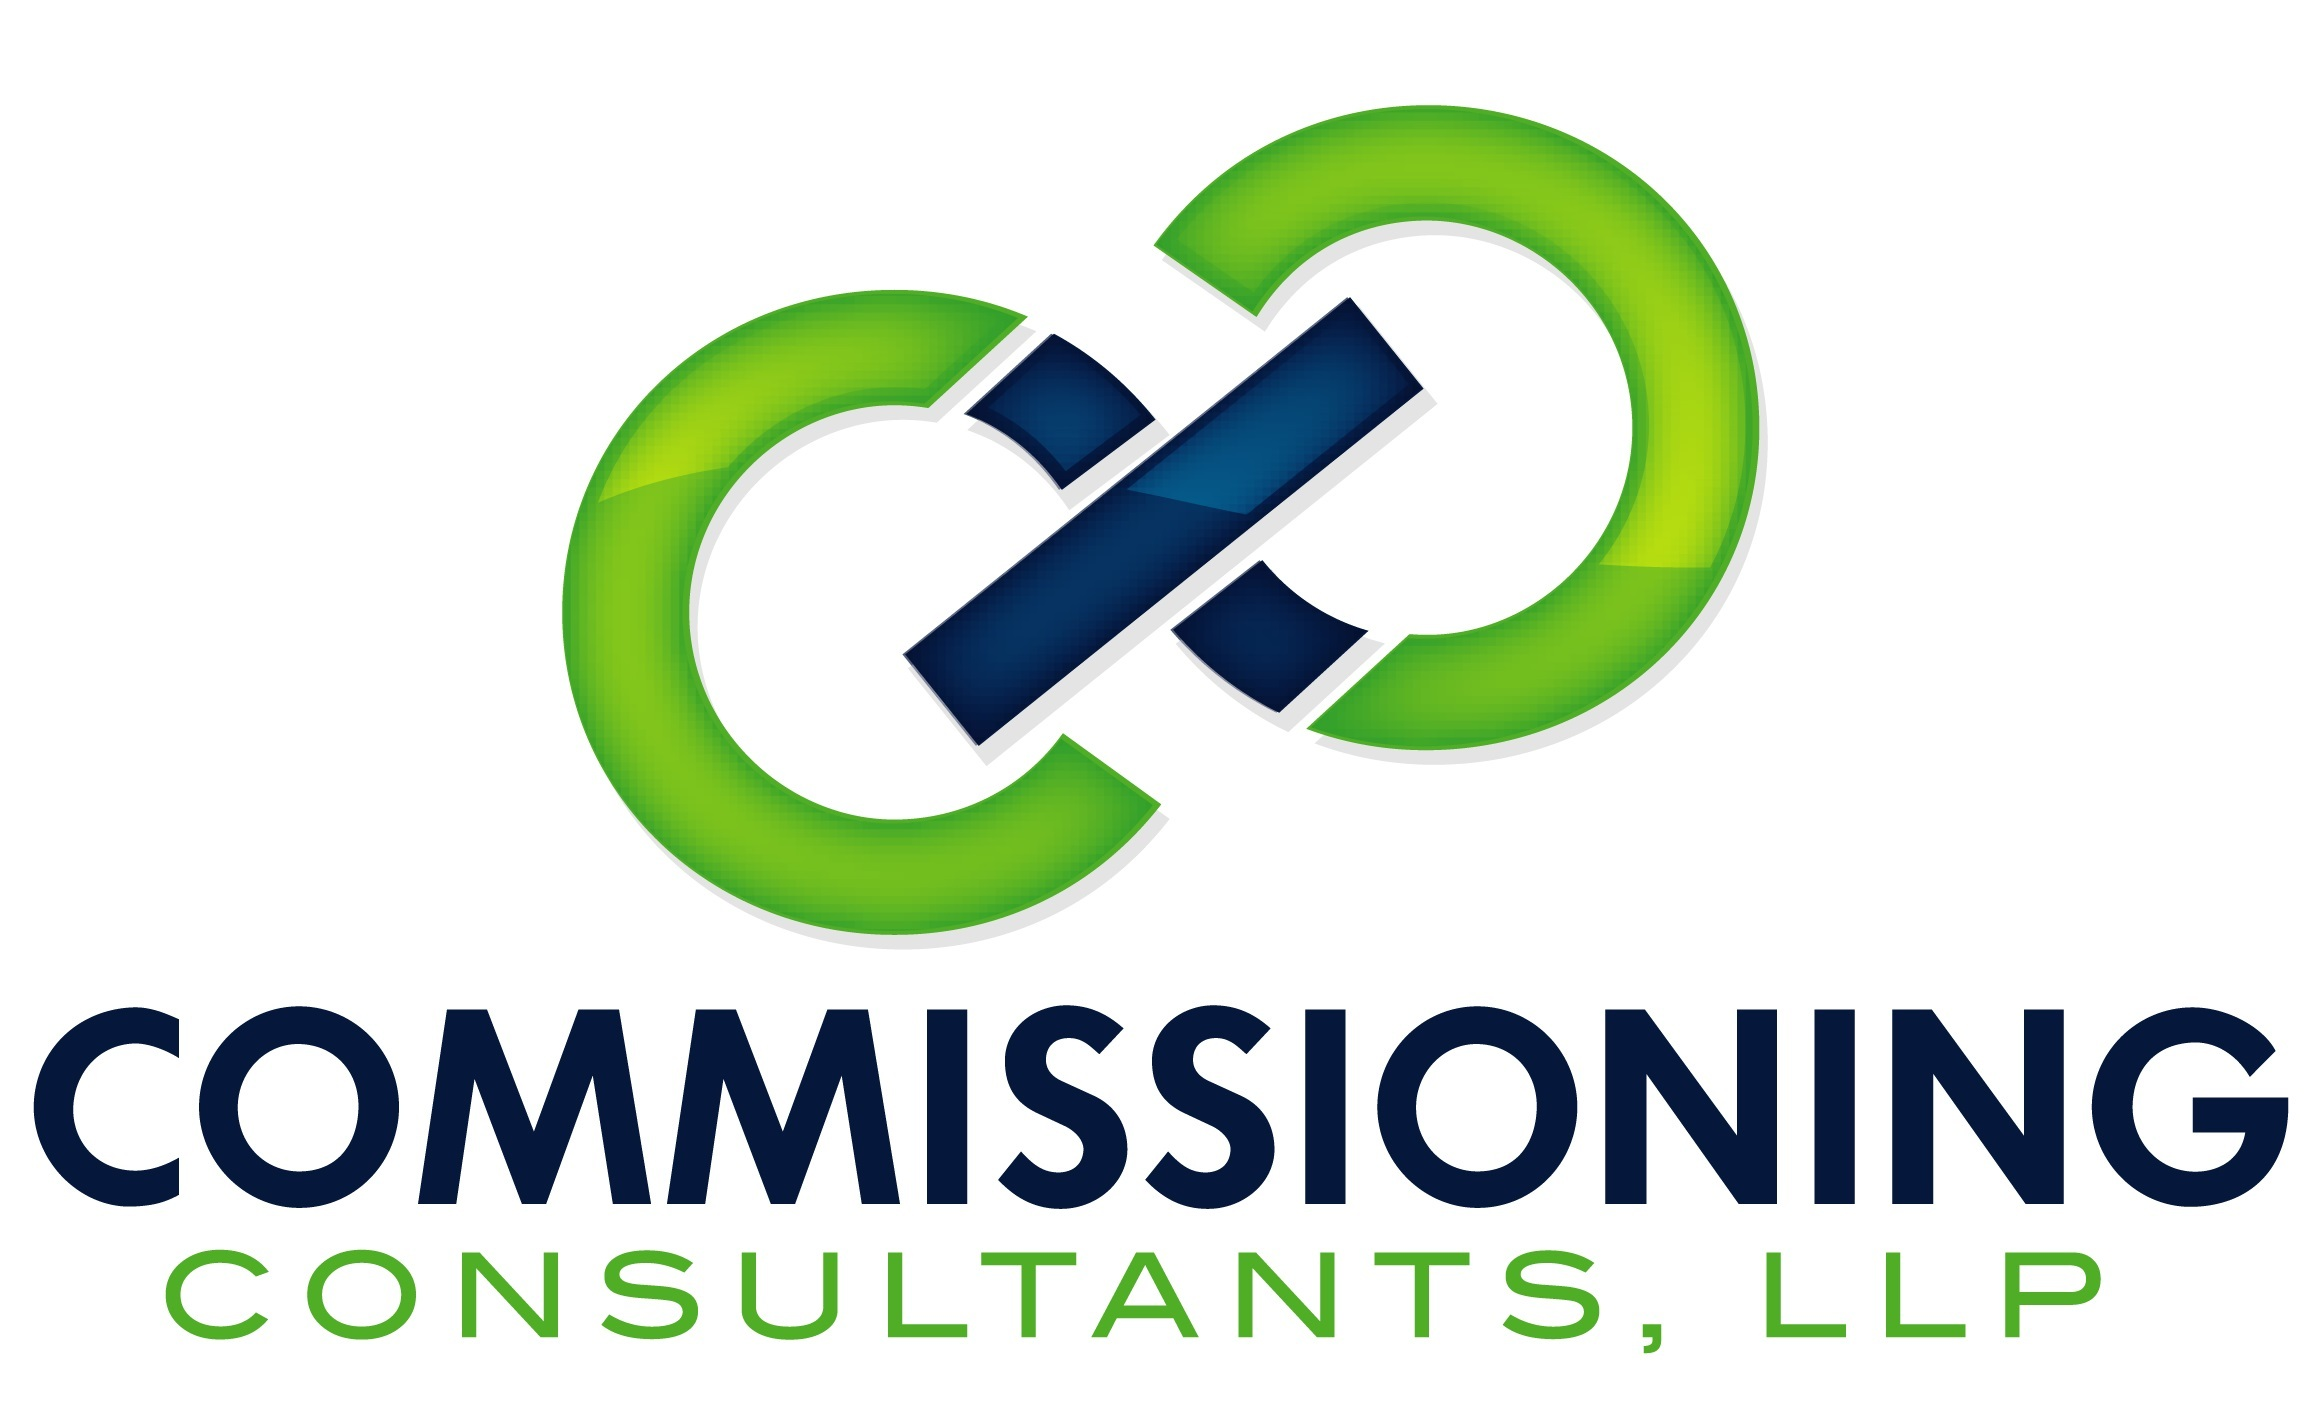 Commissioning Consultants